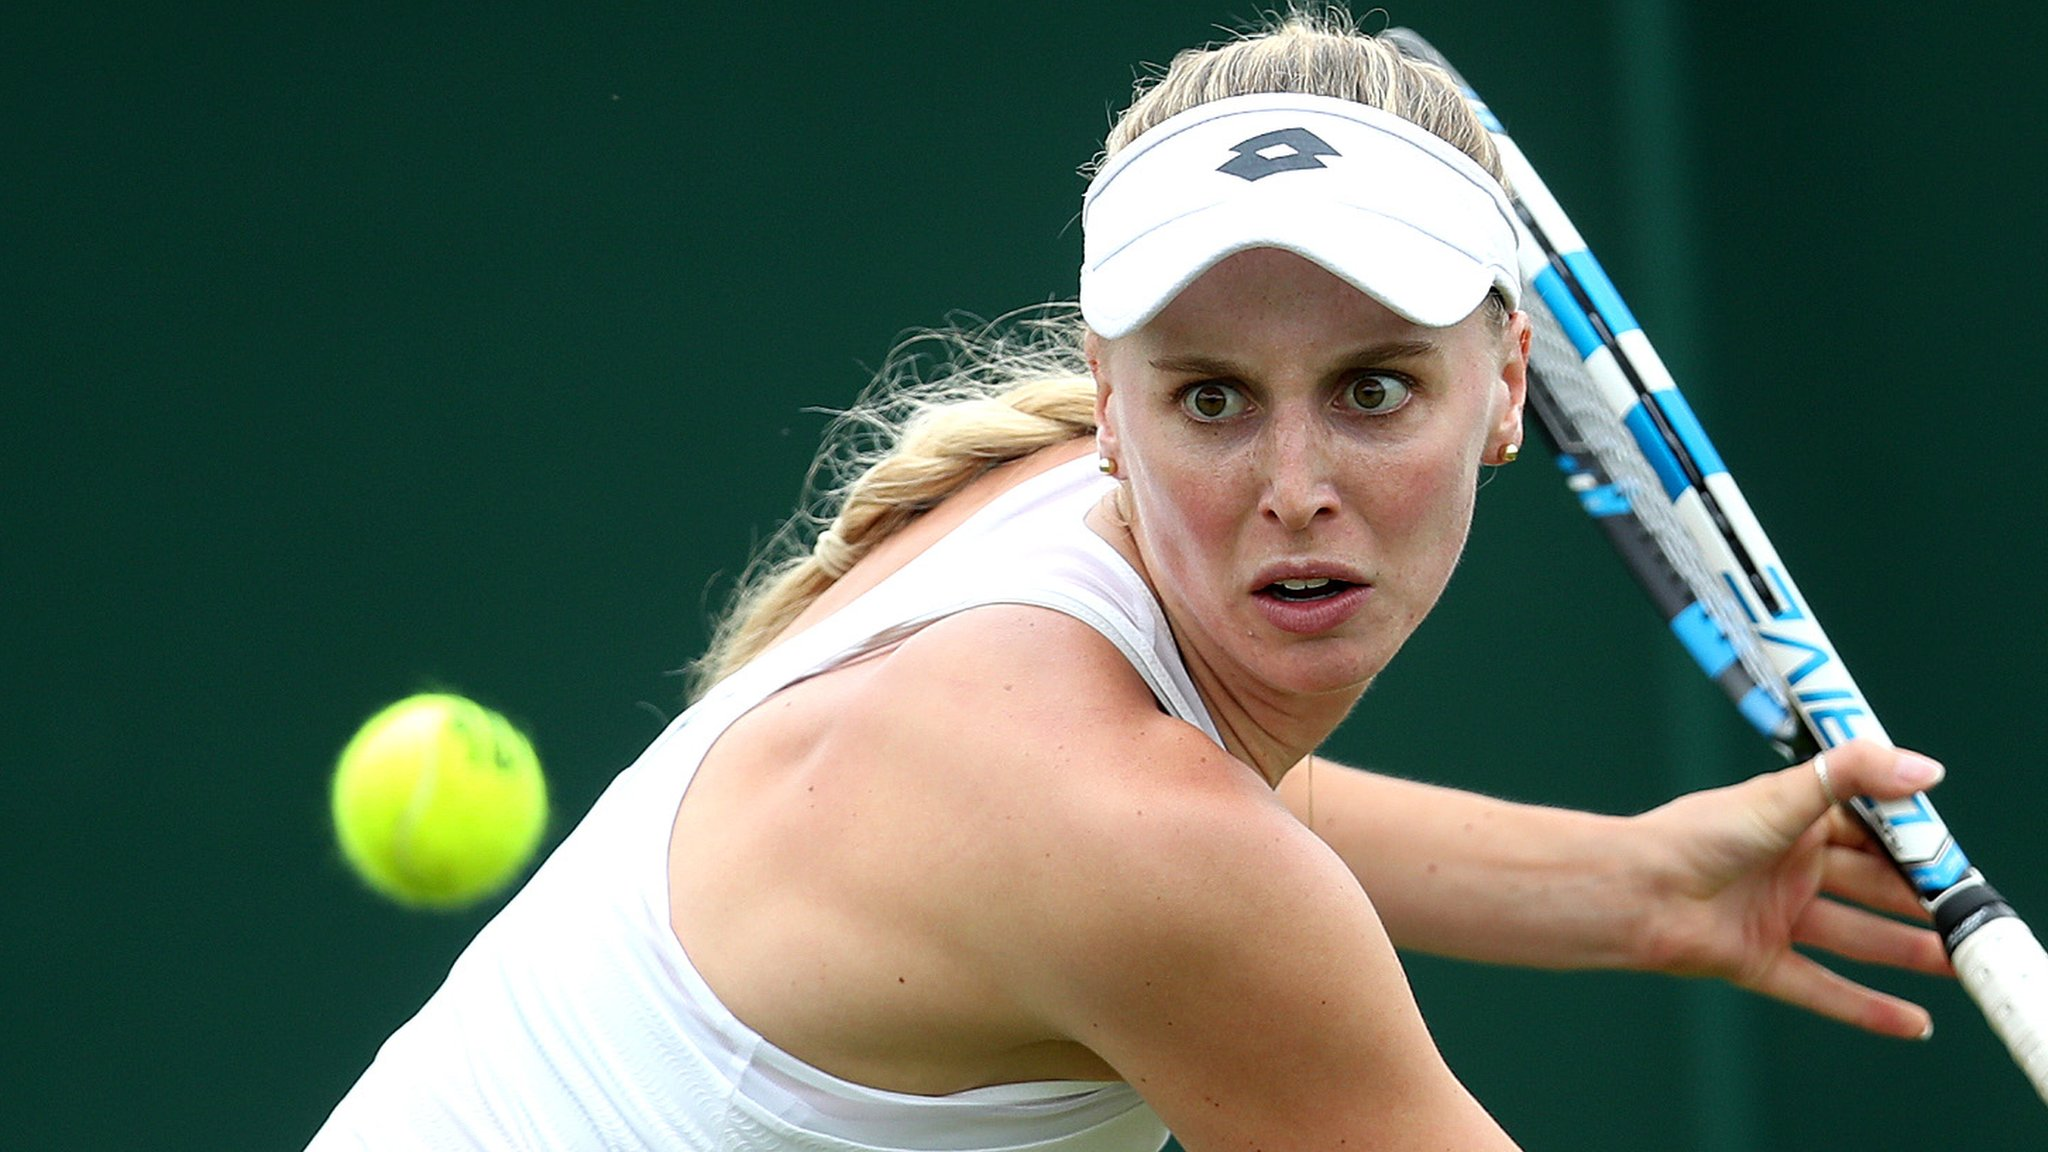 Wimbledon qualifying 2019: Naomi Broady out, but Samantha Murray and Gabriella Taylor through